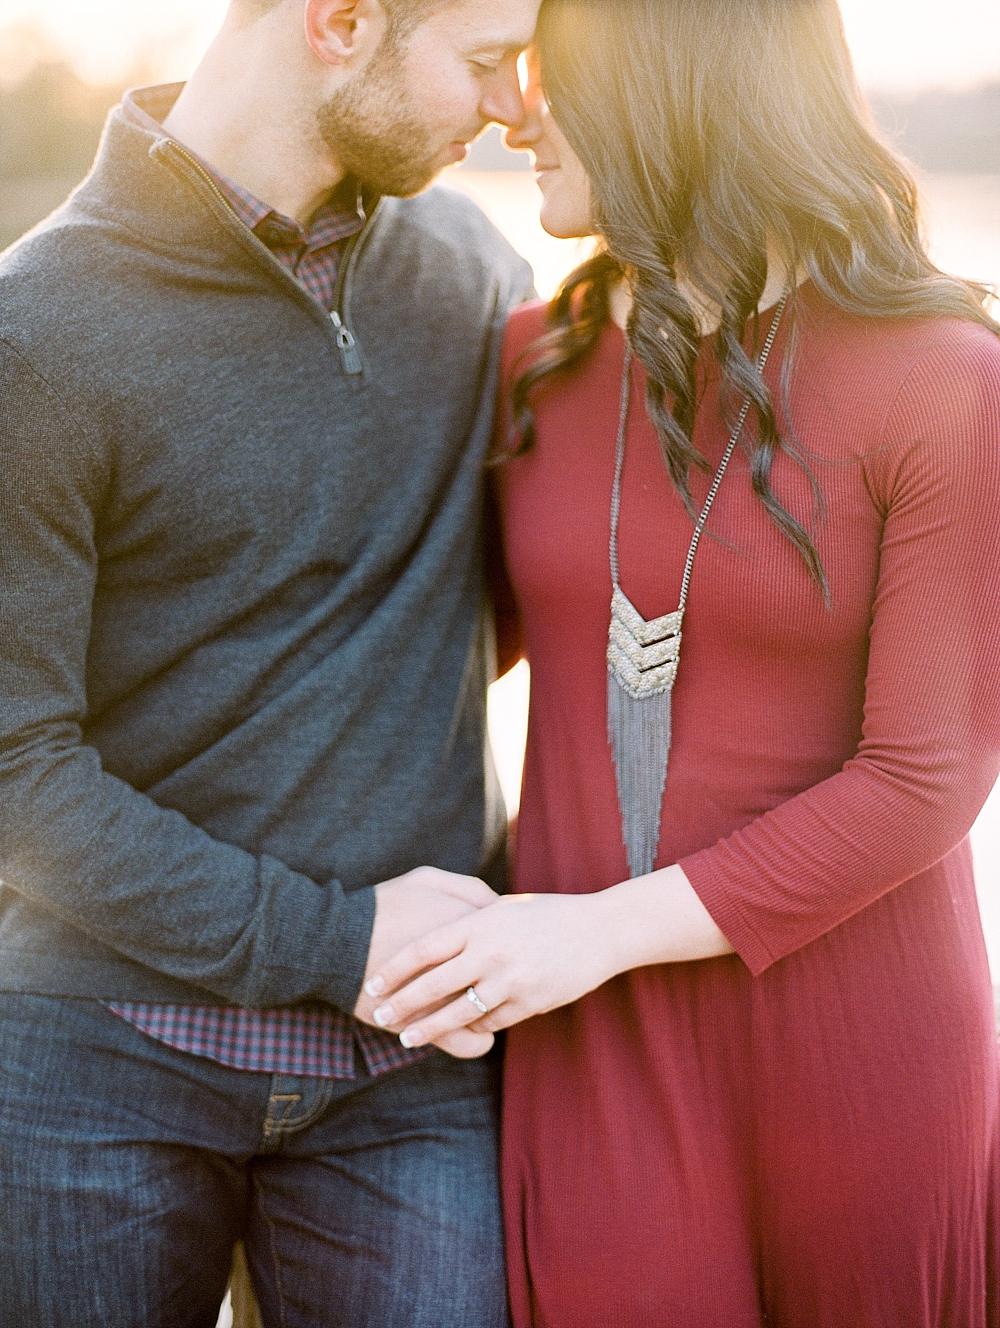 Best places in Knoxville for Engagement Photos | Juicebeats Photography | Knoxville Wedding Photographer